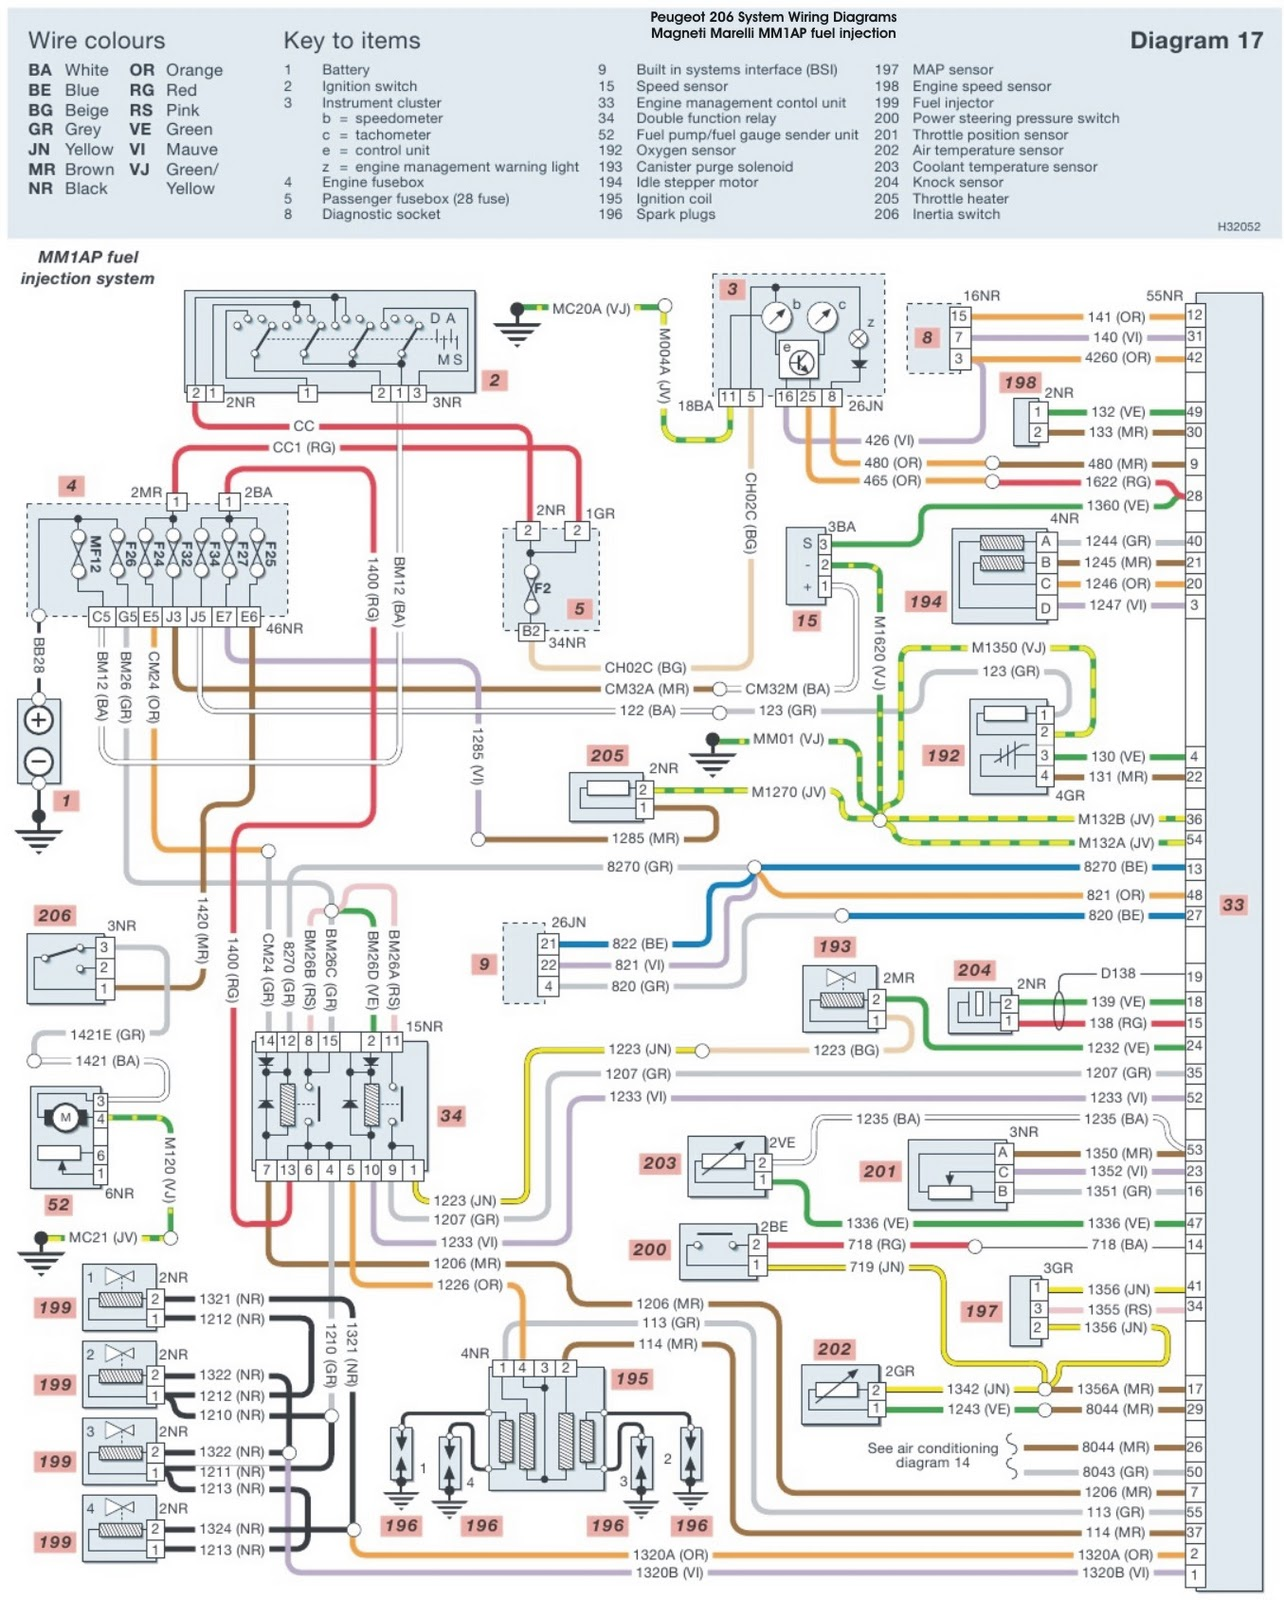 peugeot wiring diagram peugeot wiring diagrams peugeot engine diagrams